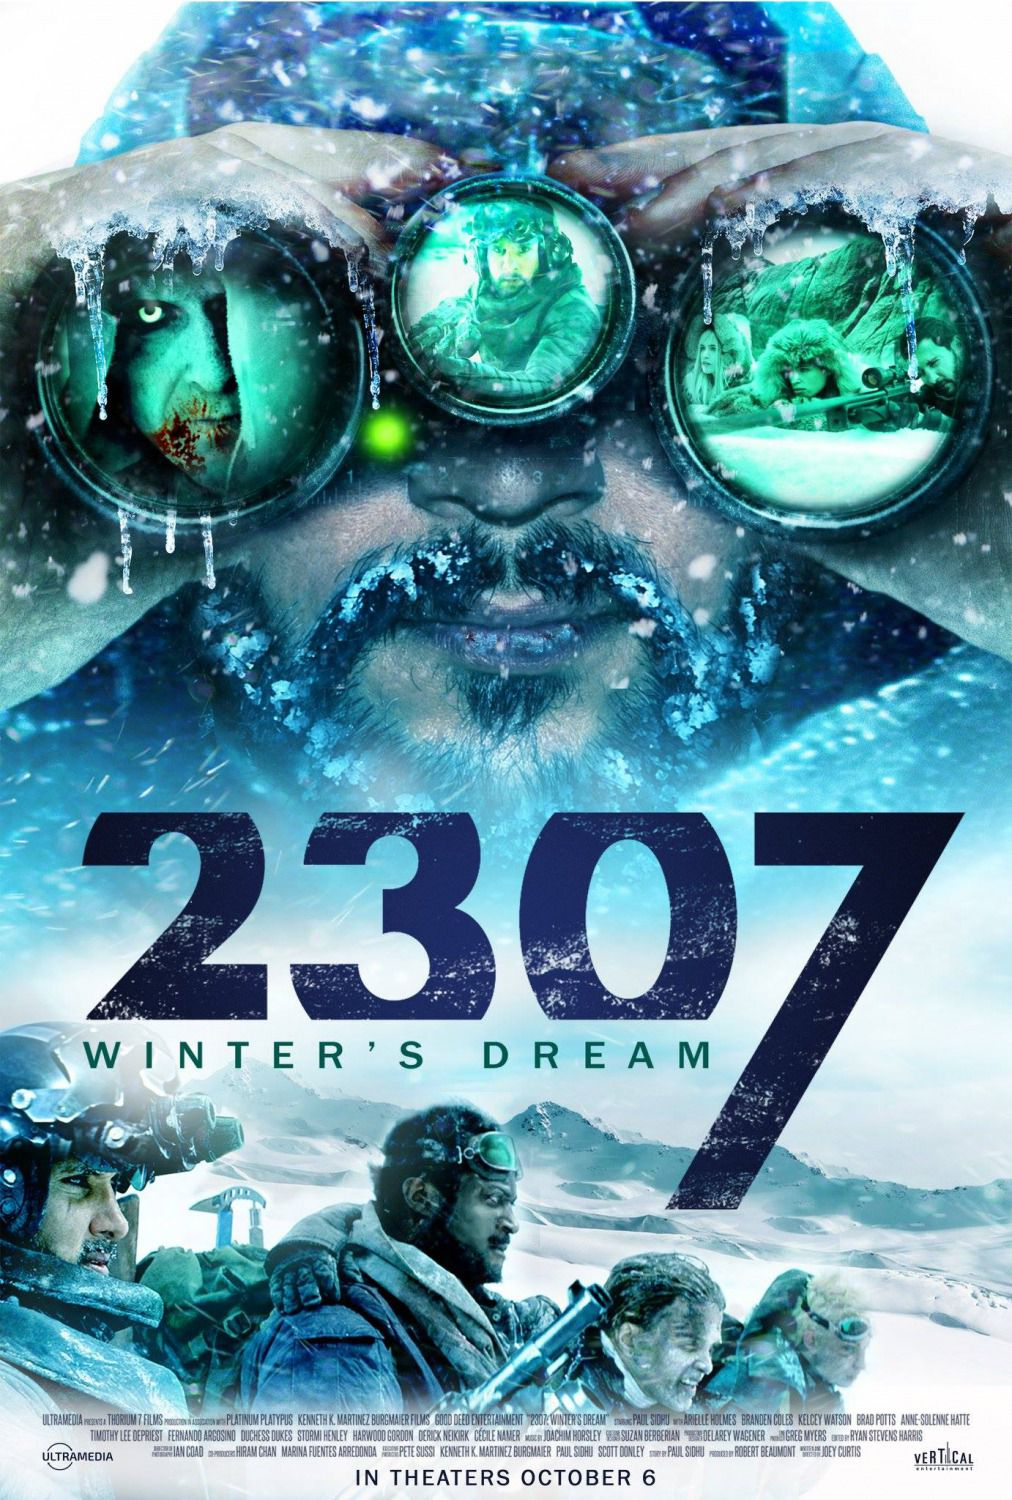 2307 Winters Dream - film poster